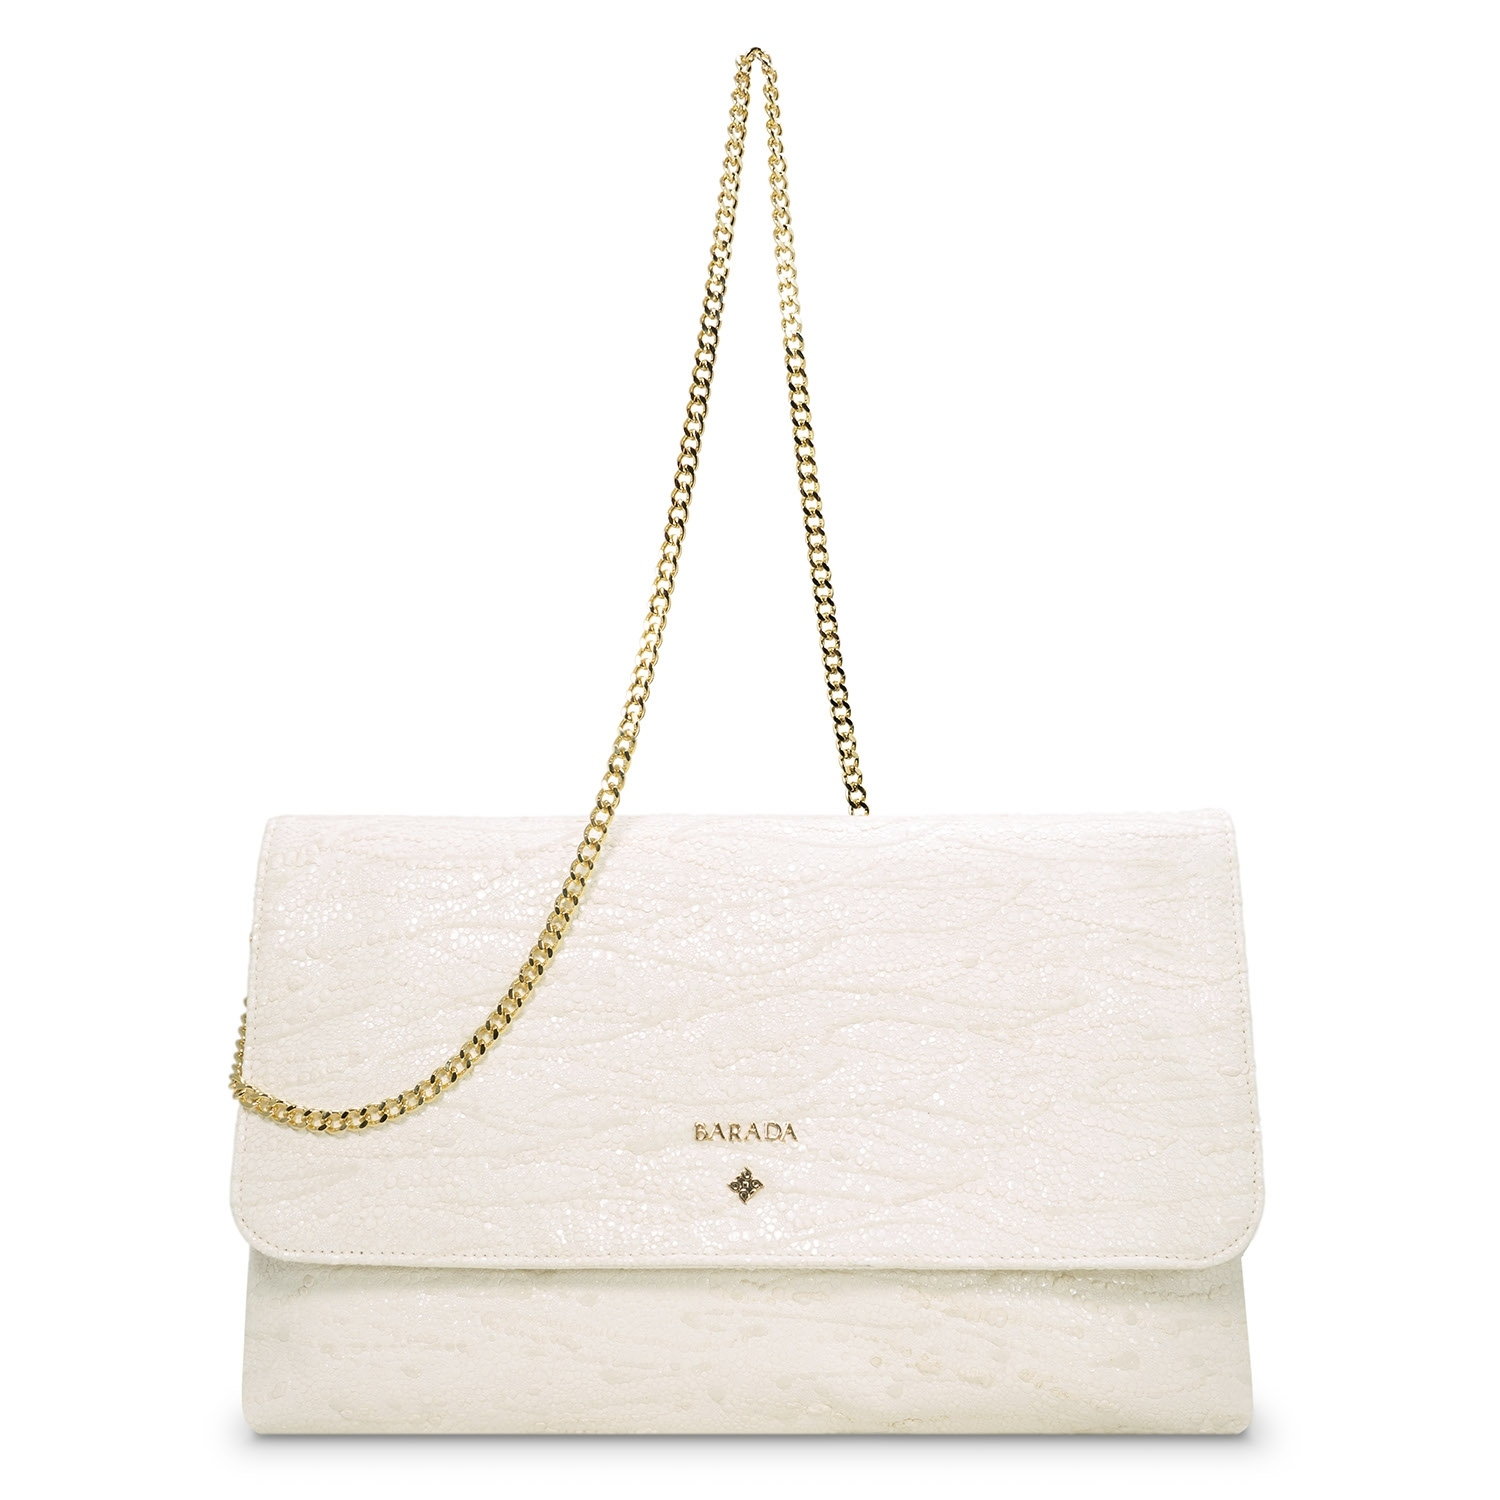 e9ed4a7b626c Clutch handbag from our amatista collection in lamb skin and beige color  jpg 1000x1000 Clutch beige